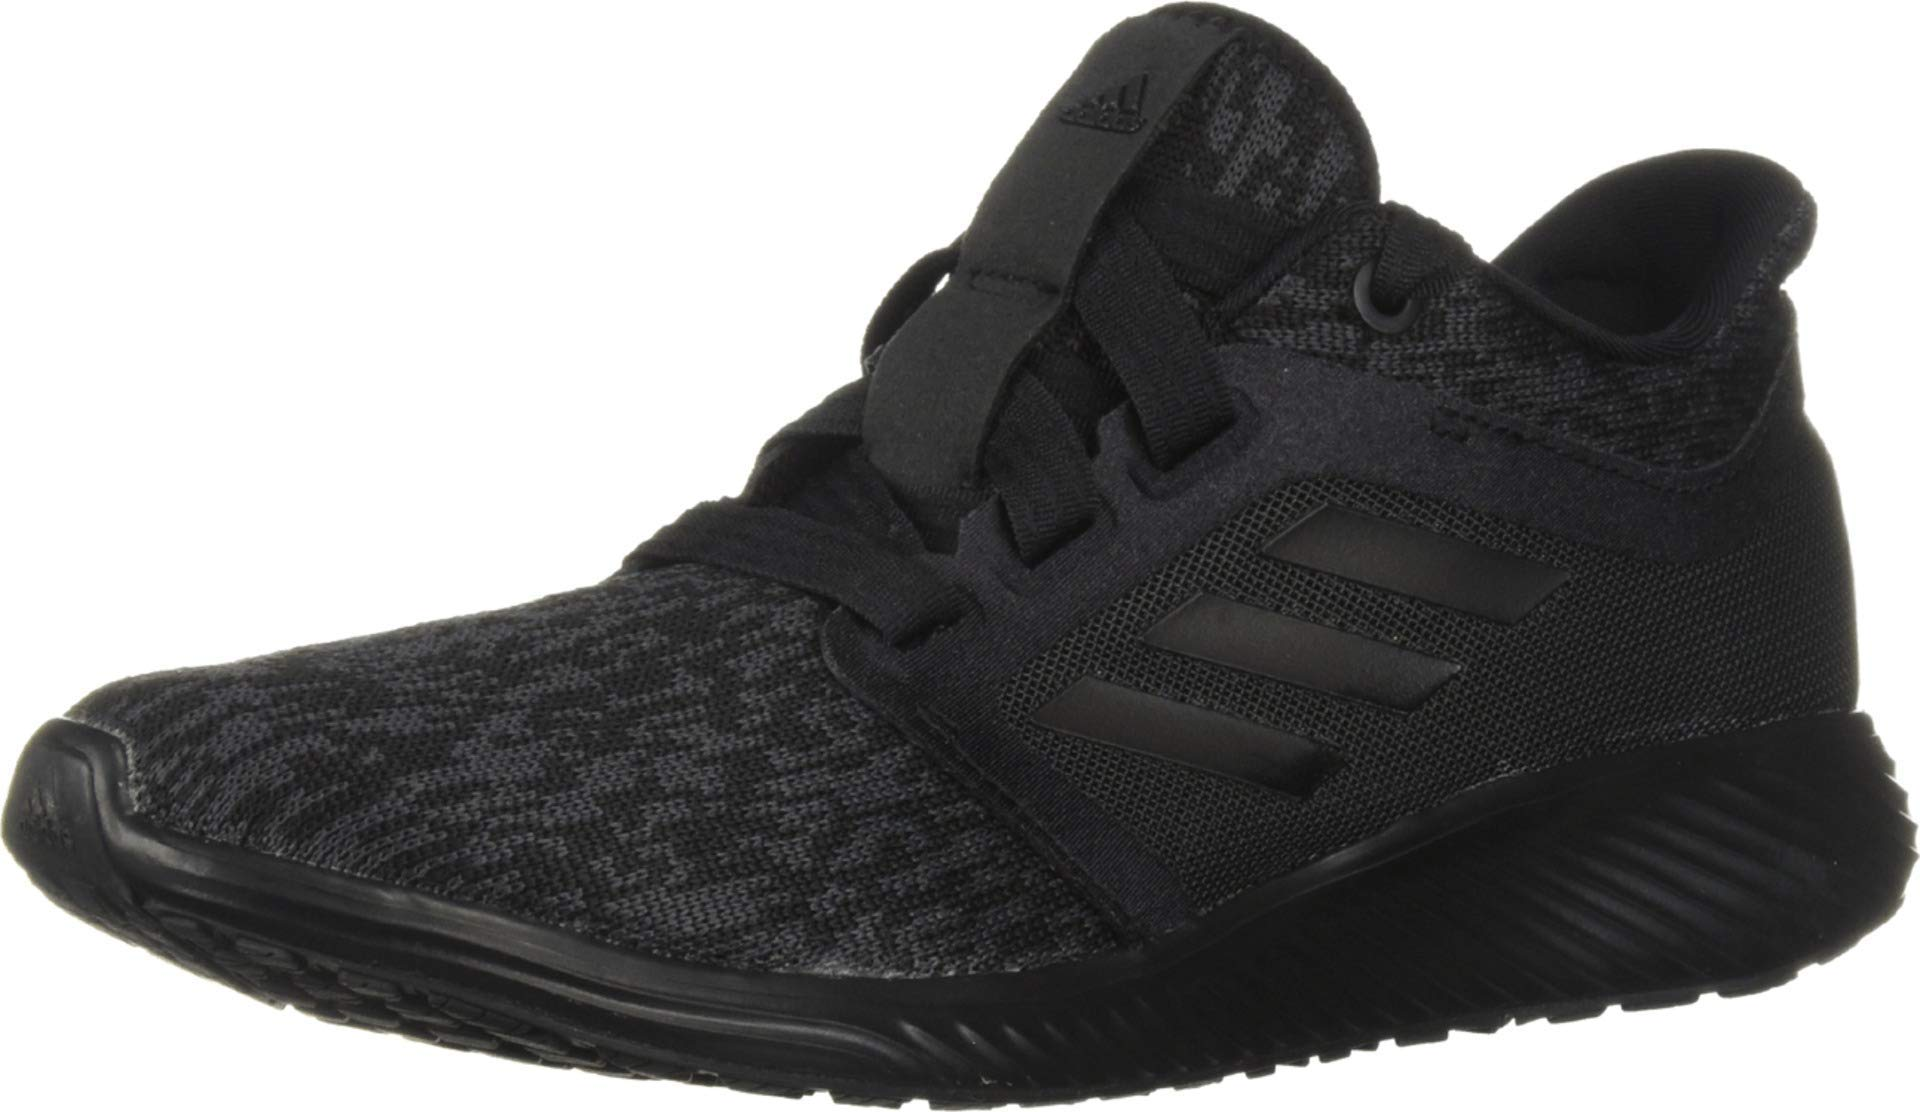 adidas Women's Edge Lux 3, Black/Carbon, 5 M US